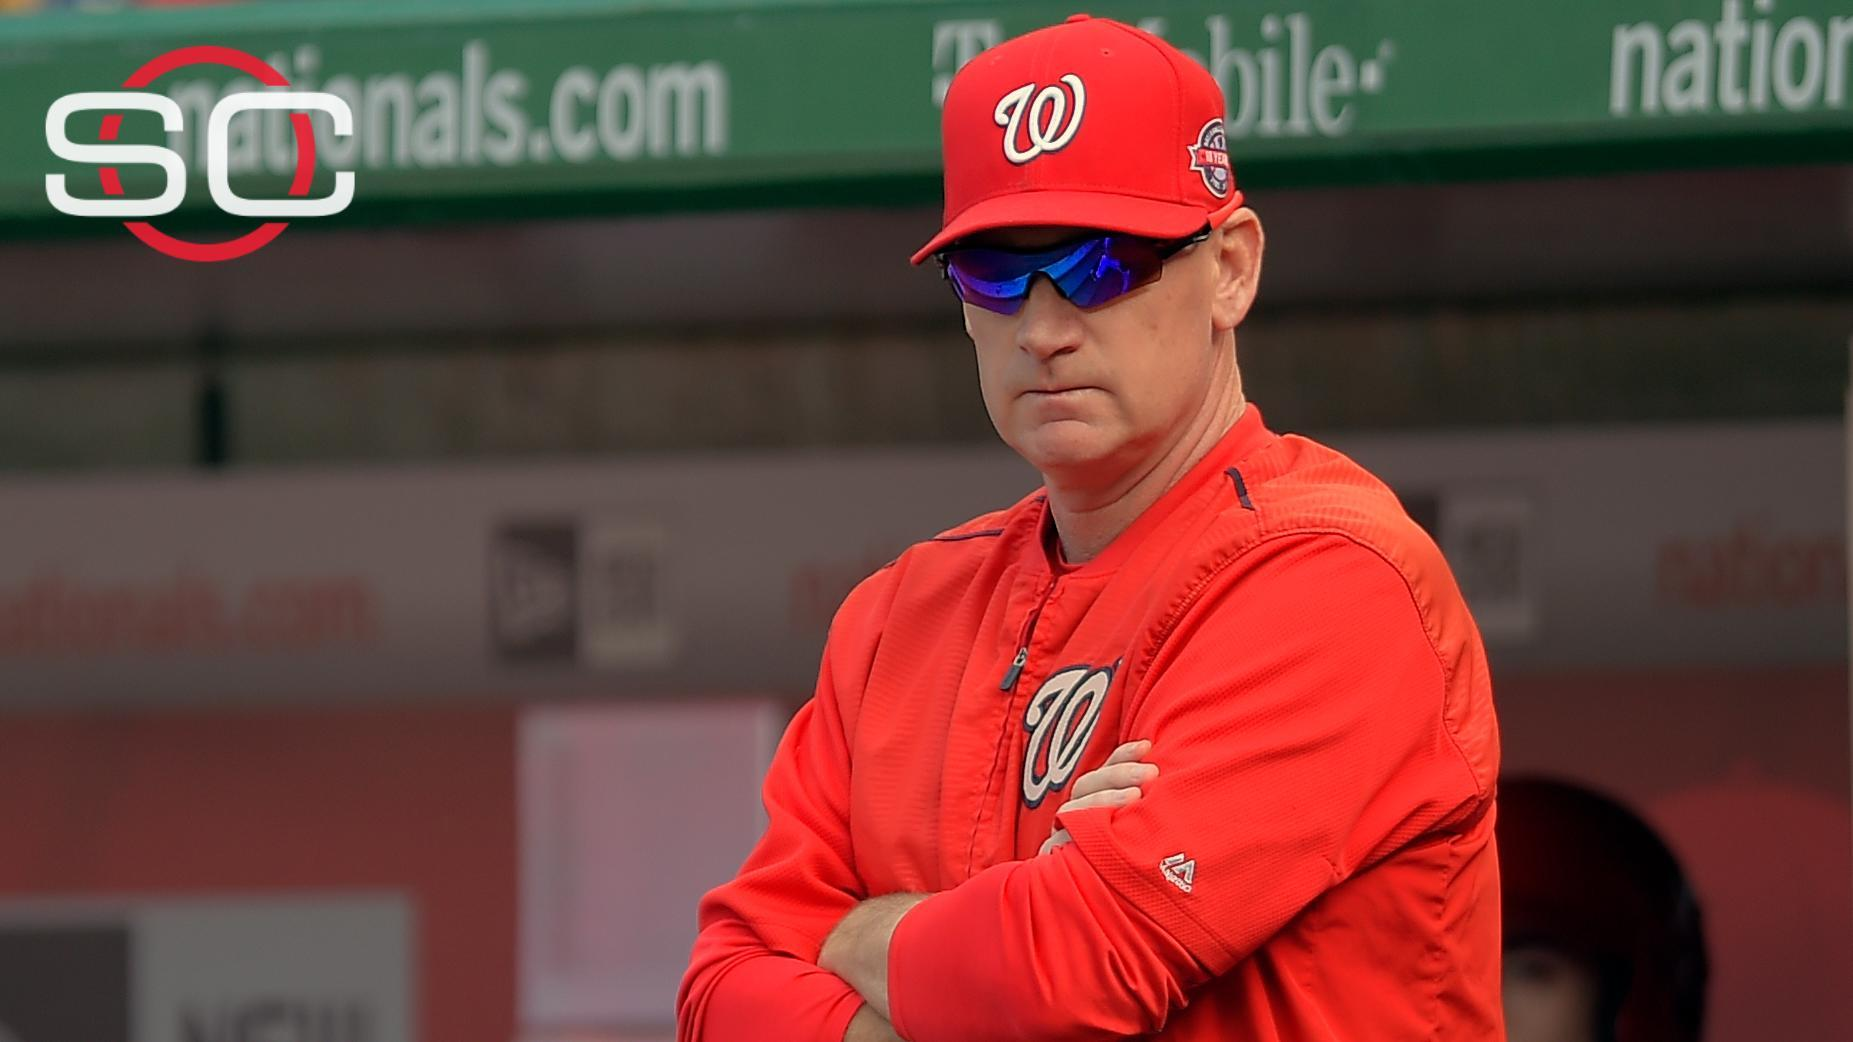 http://a.espncdn.com/media/motion/2015/1005/dm_151005_mlb_matt_williams_fired962/dm_151005_mlb_matt_williams_fired962.jpg